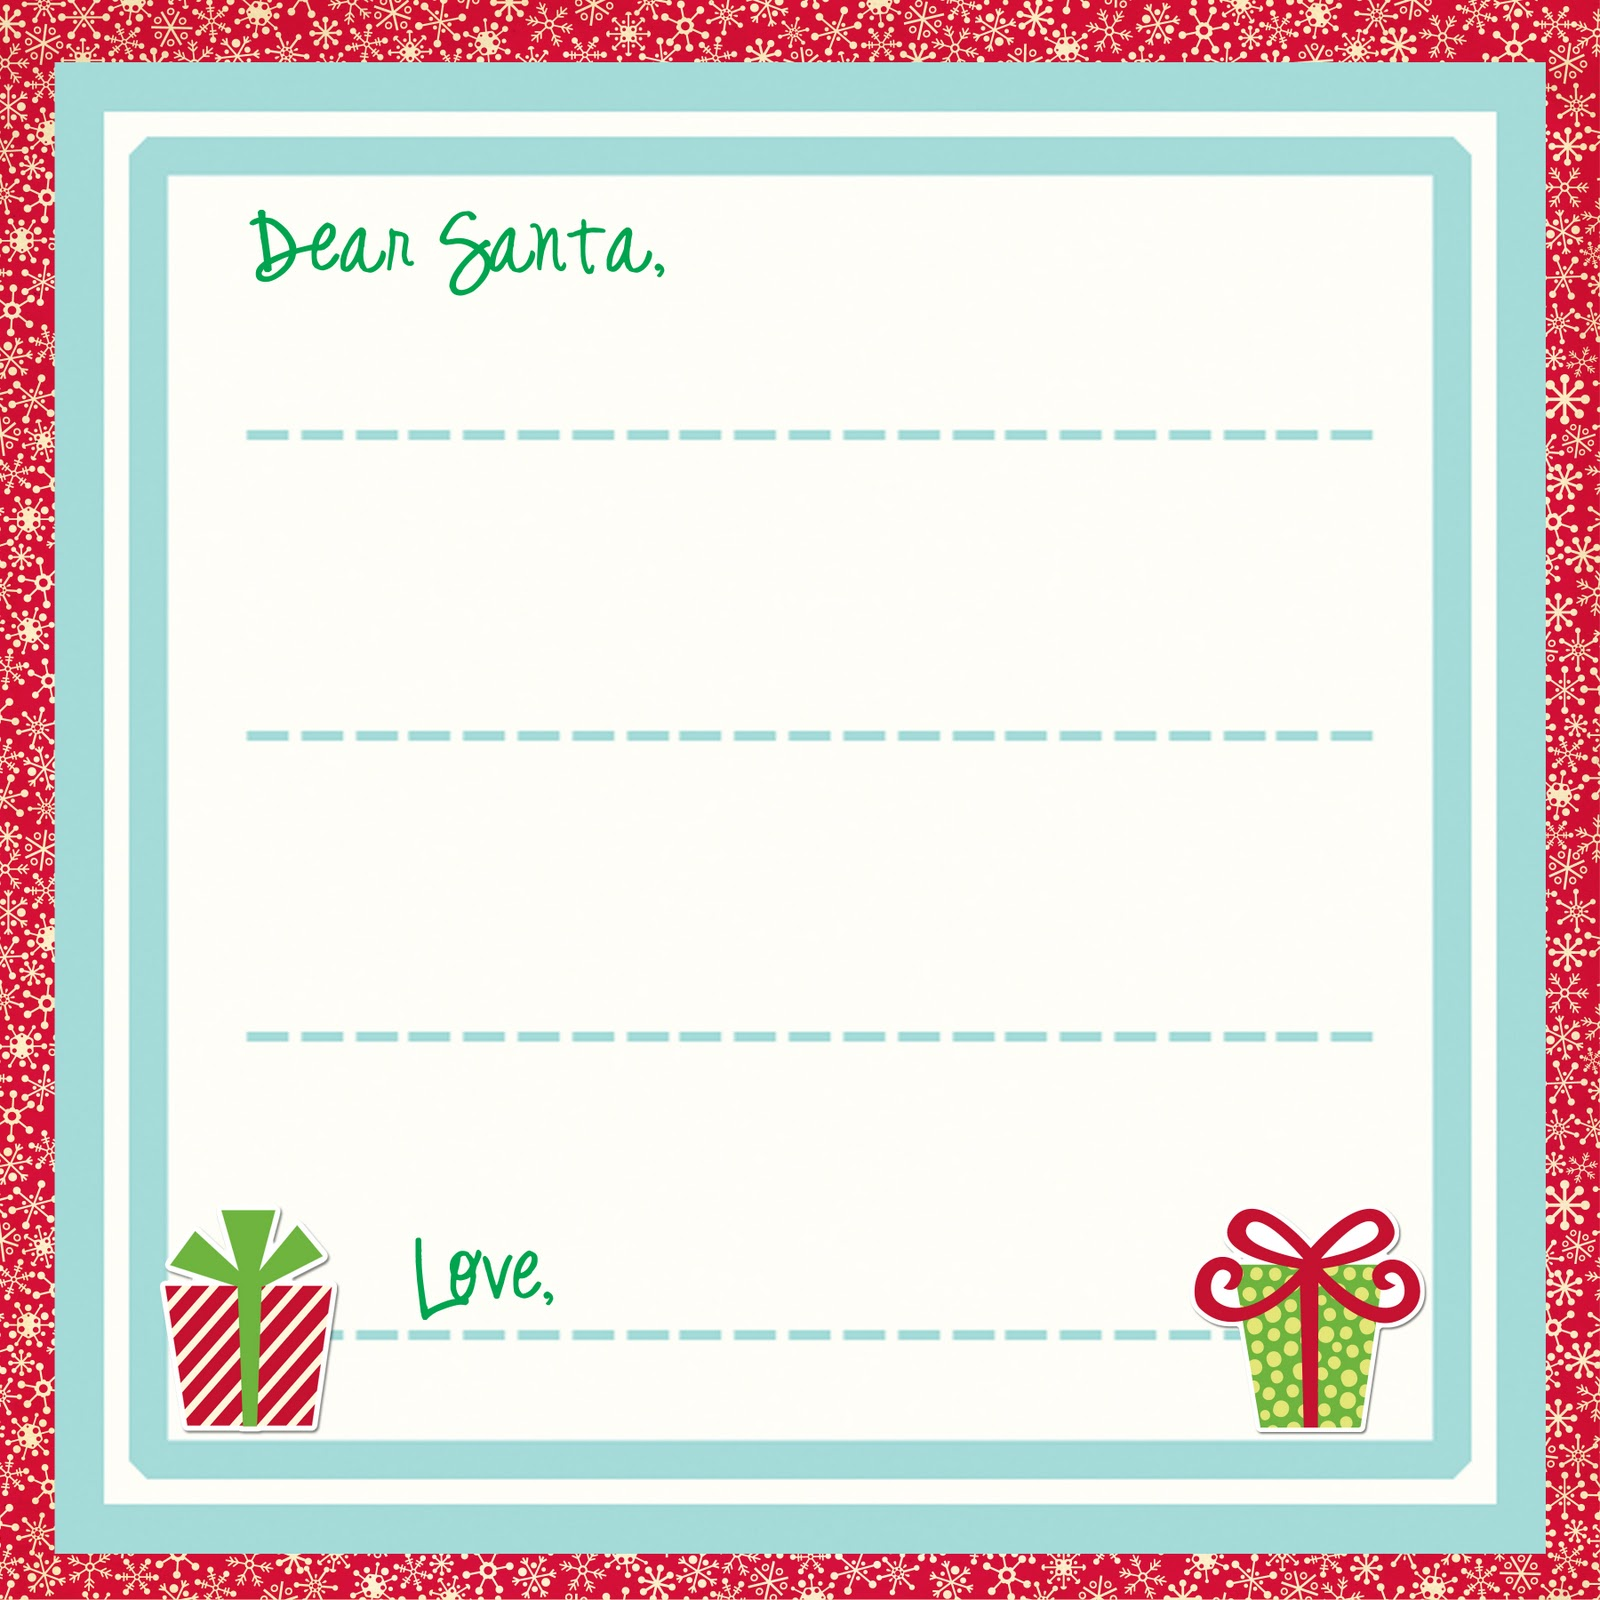 TOUCHING HEARTS LETTERS TO SANTA CLAUS Templates Free Printable - Free printable letter from santa template